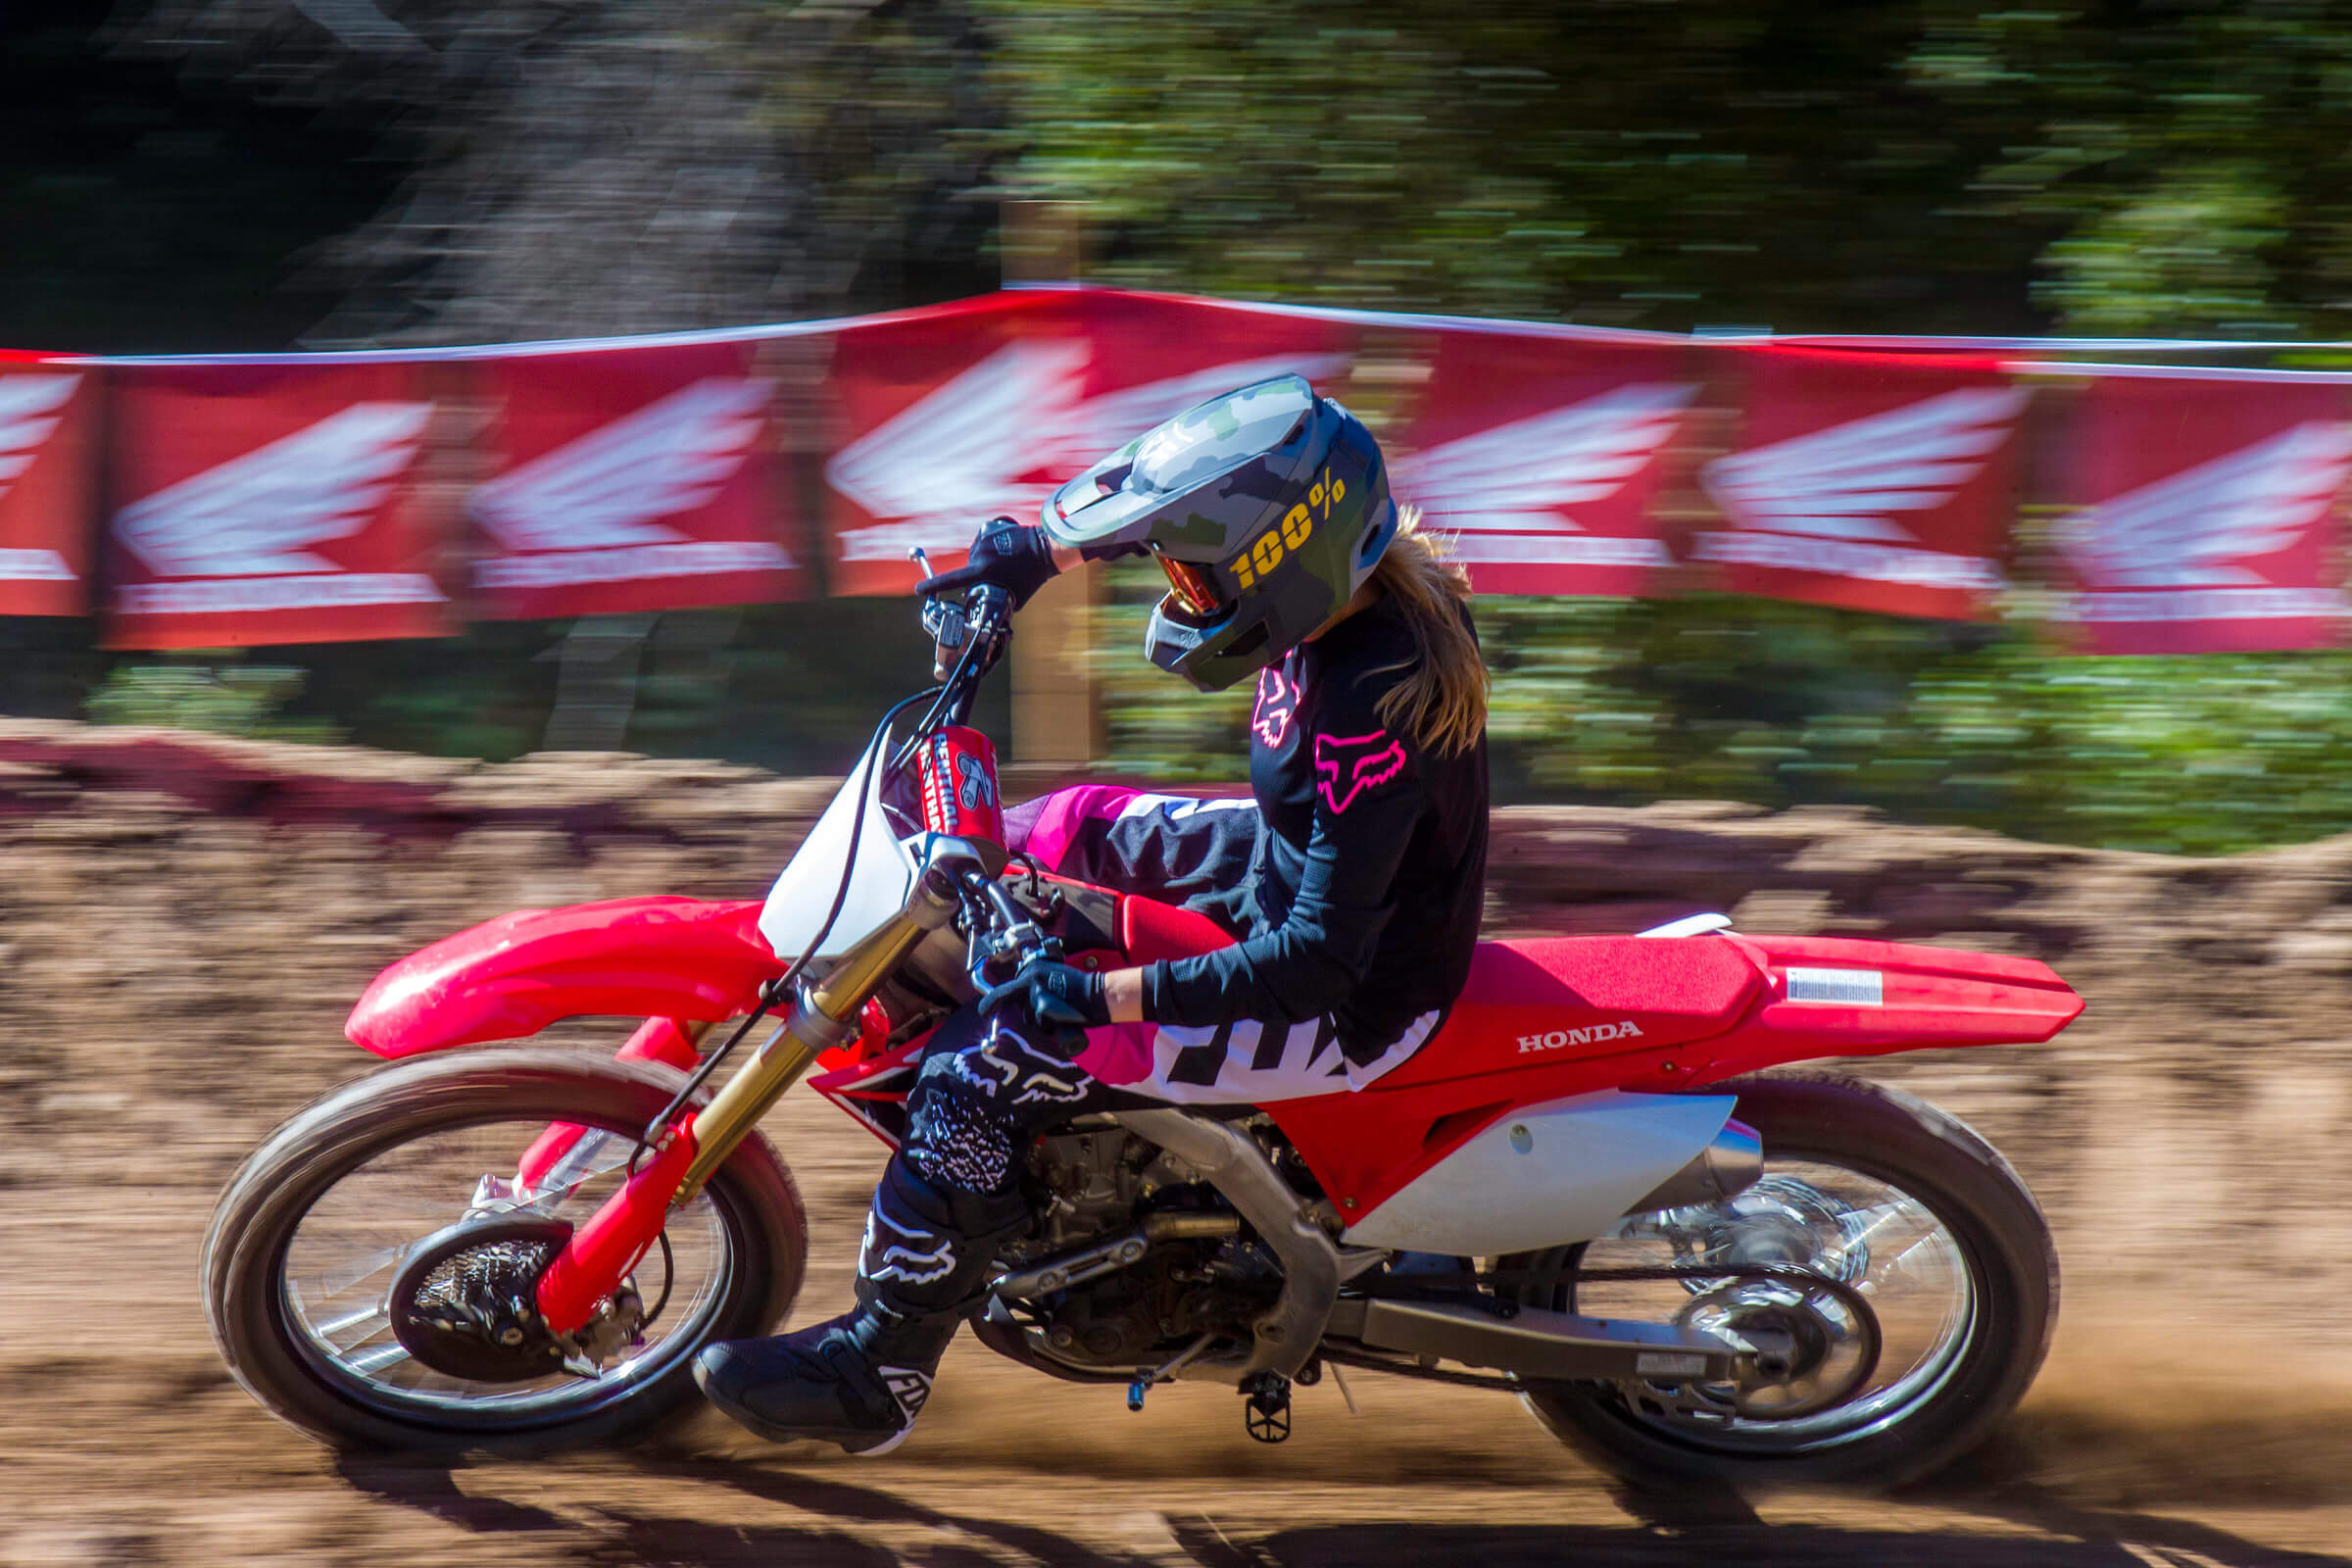 2021 Crf250r Overview Honda